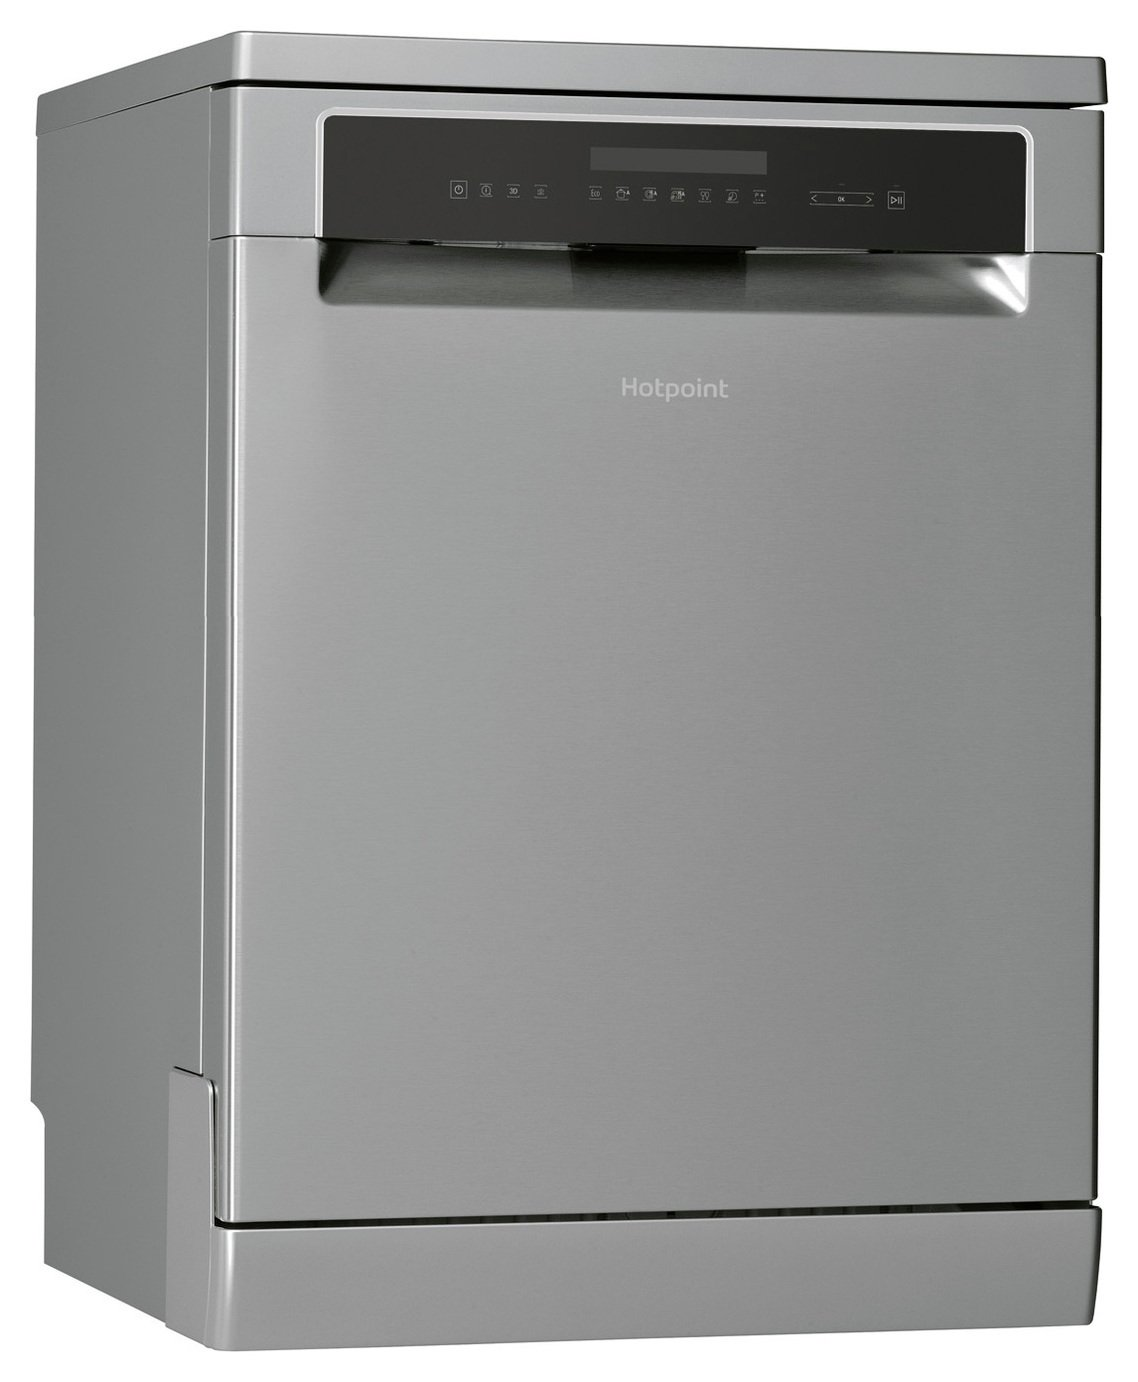 Hotpoint HFP4O22WGCX Full Size Dishwasher - Stainless Steel